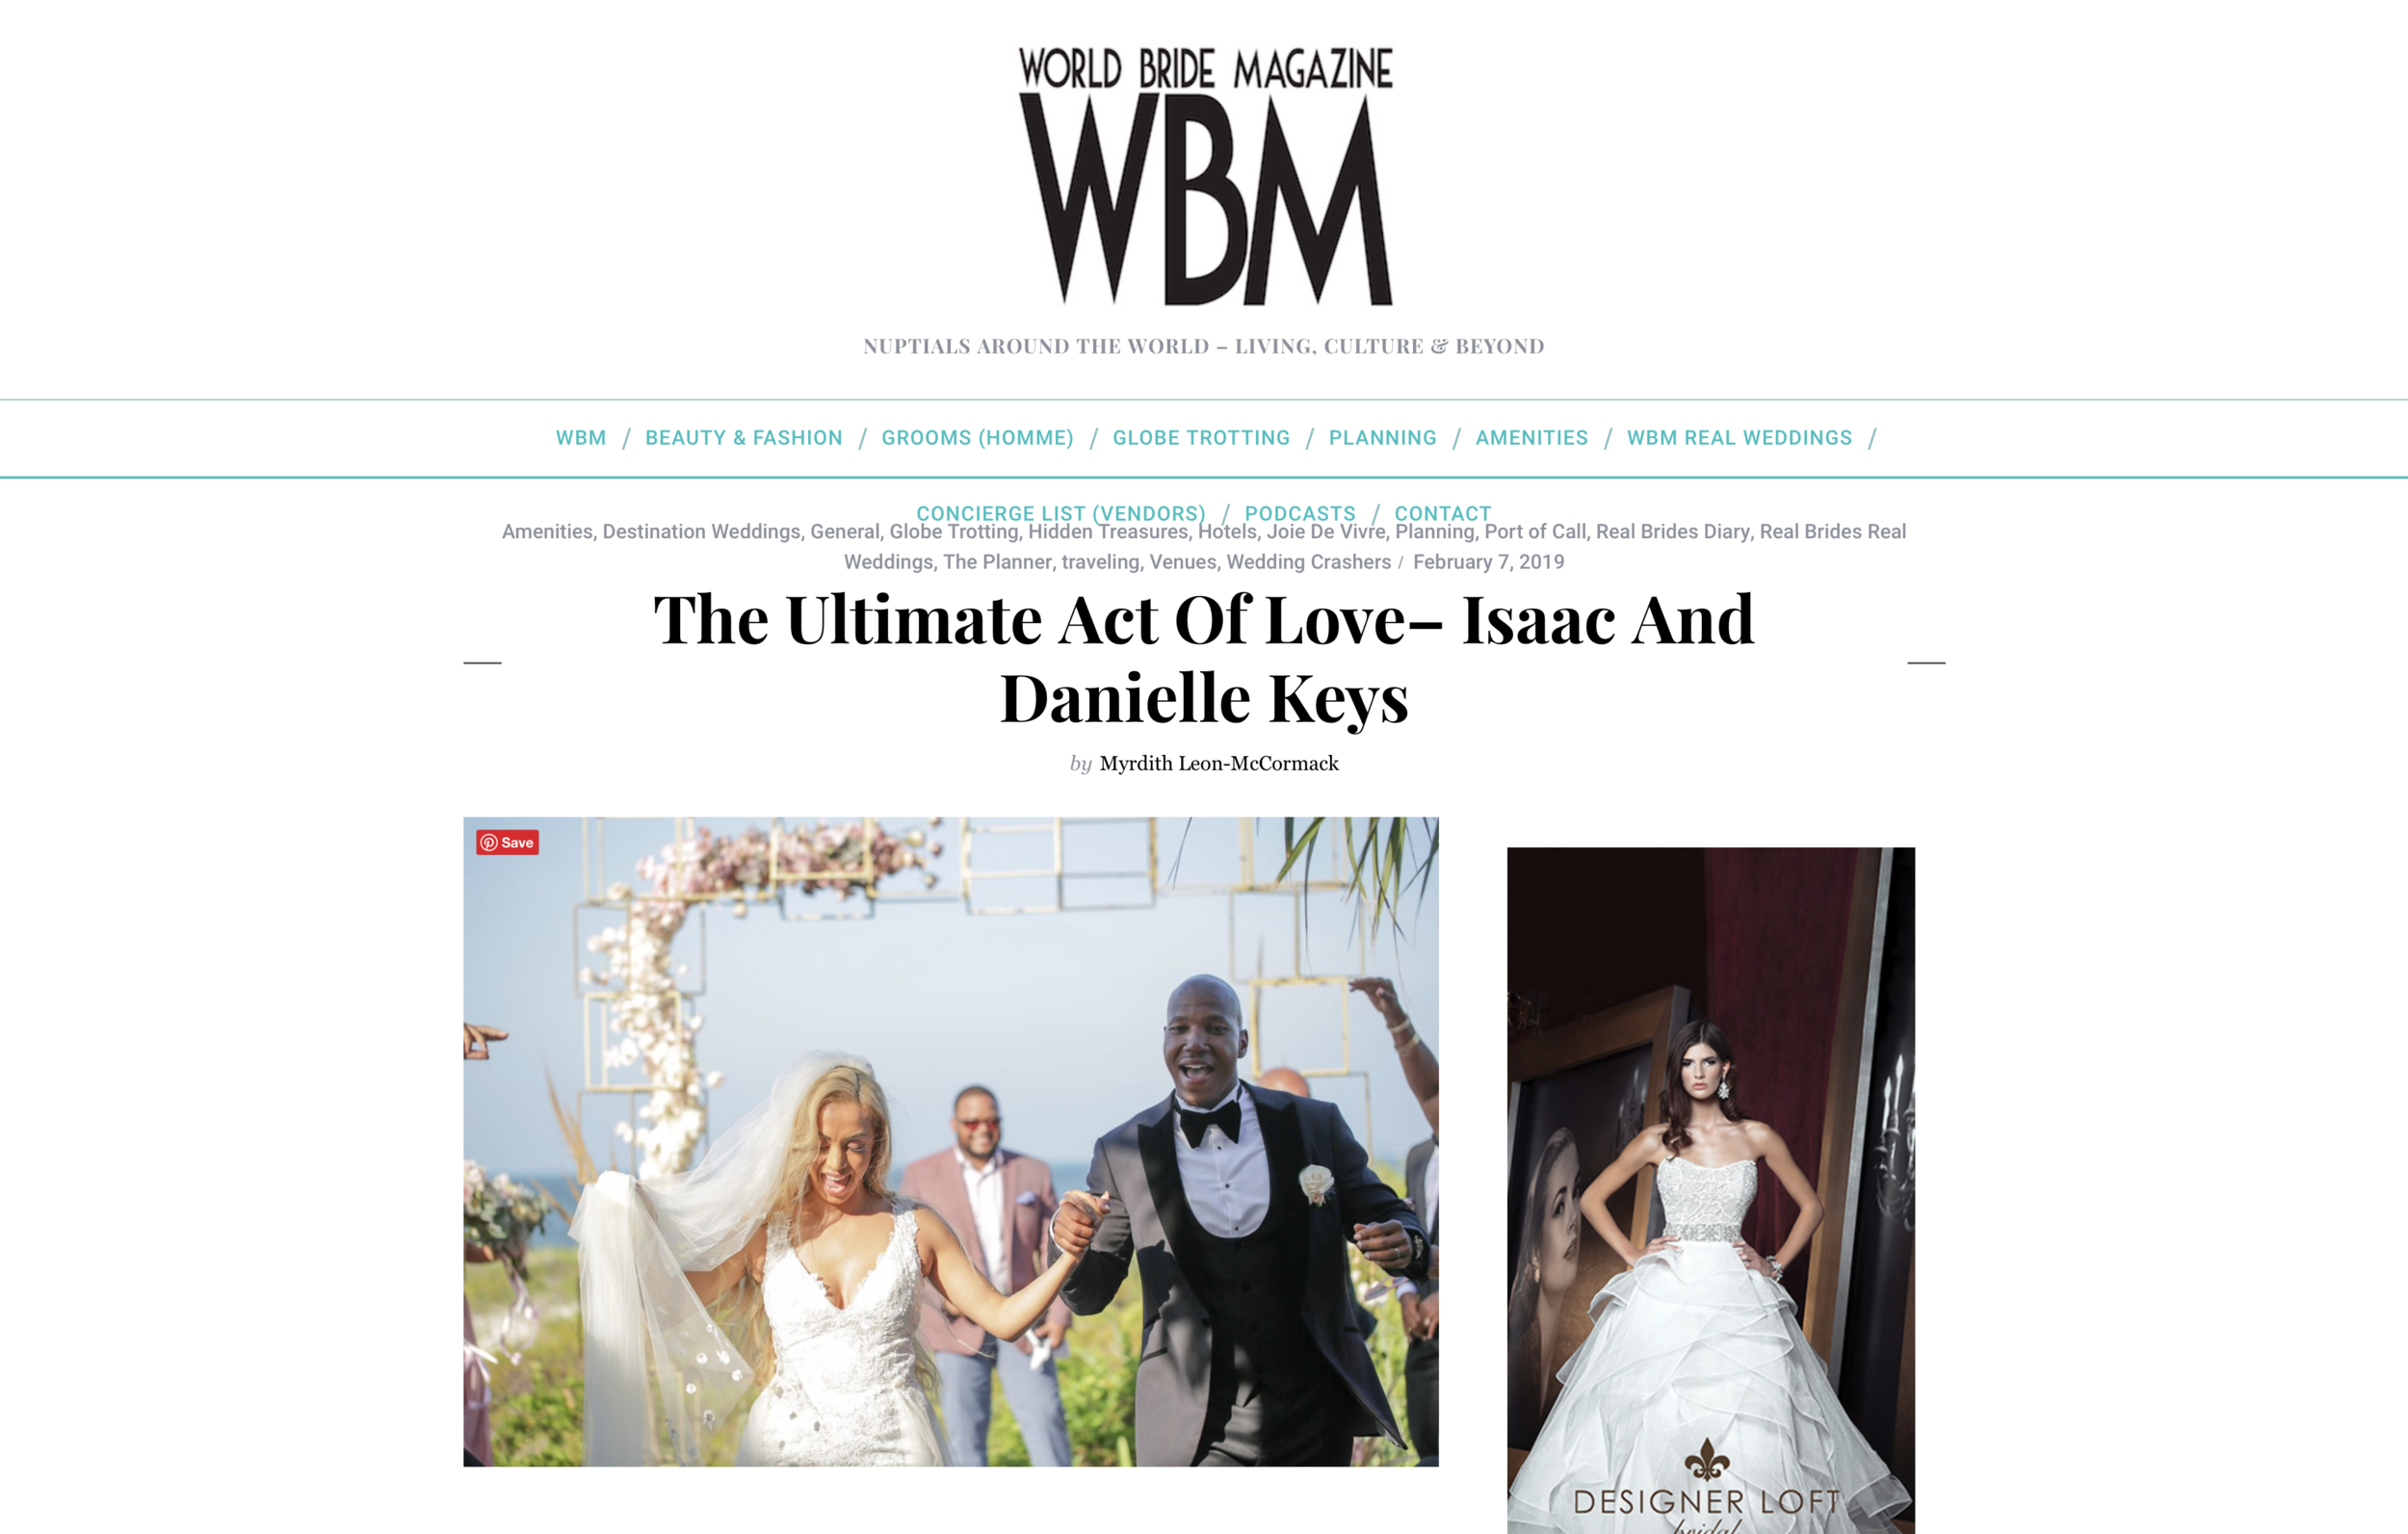 Our work was featured inWorld Bride Magazine - Watch the full video to see us take our cameras to Cancun, Mexico